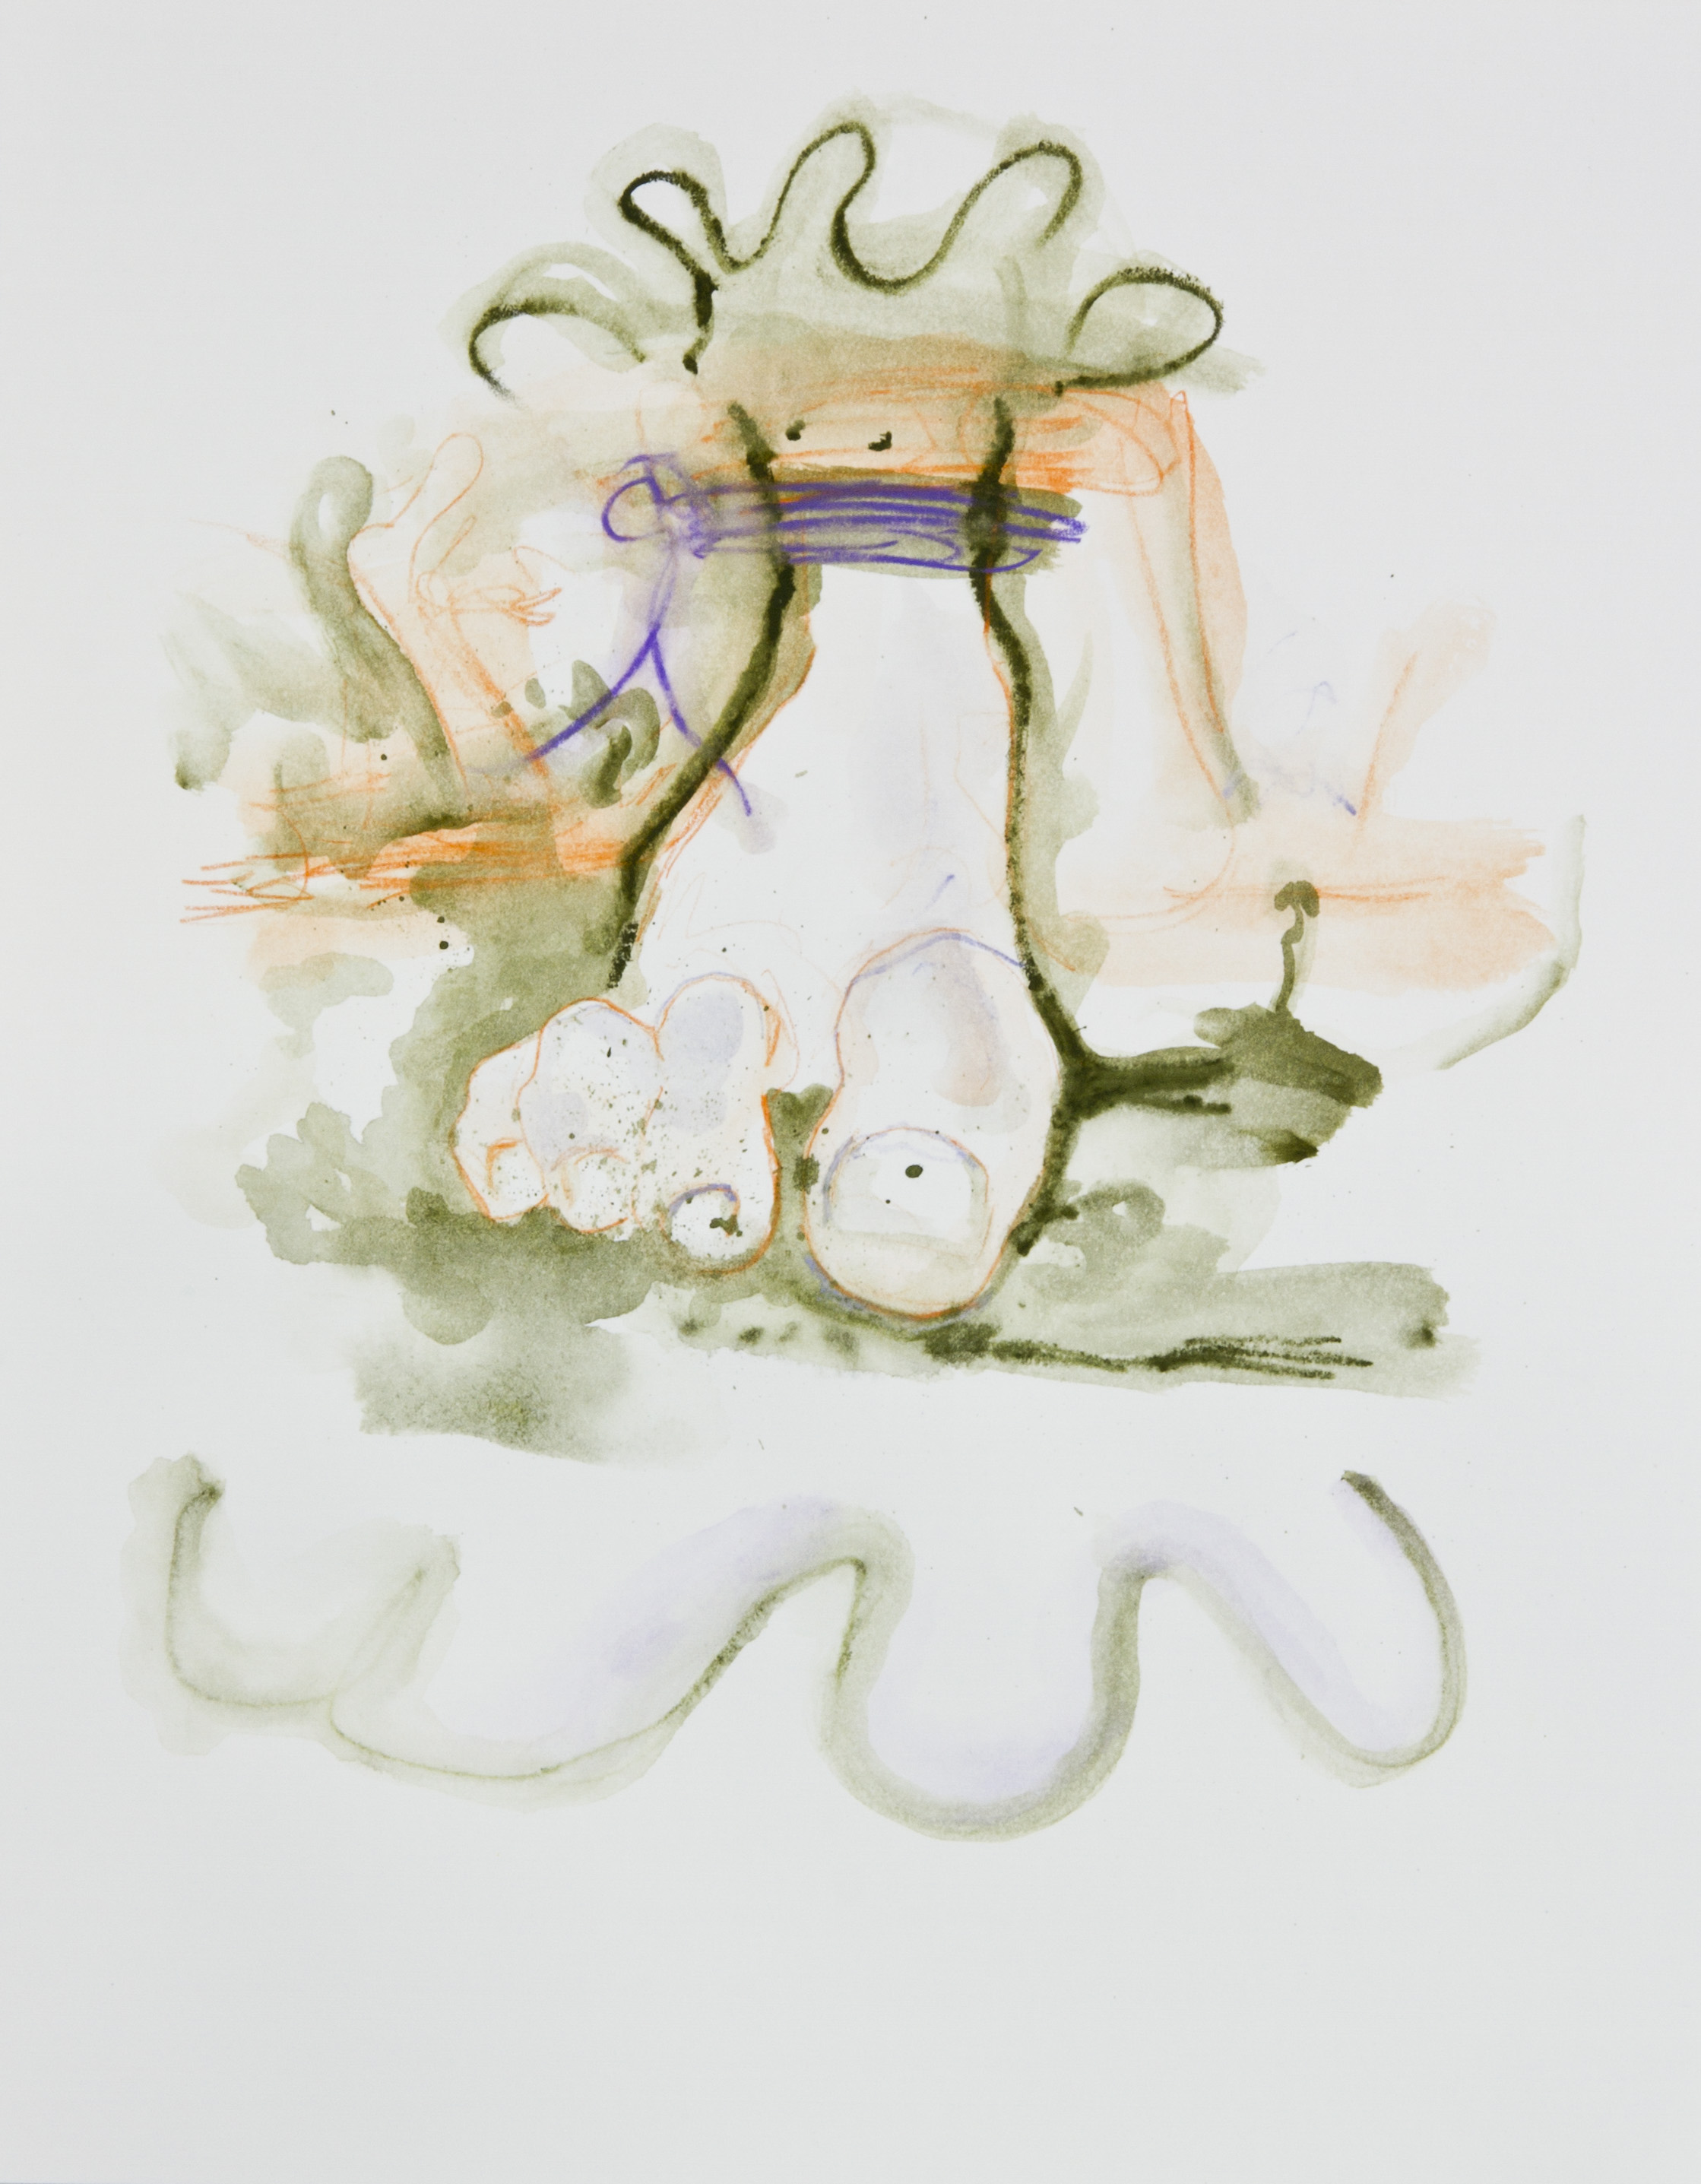 Bound Foot, 2013, graphite, crayon and watercolor pencil on paper, 11x14 inches